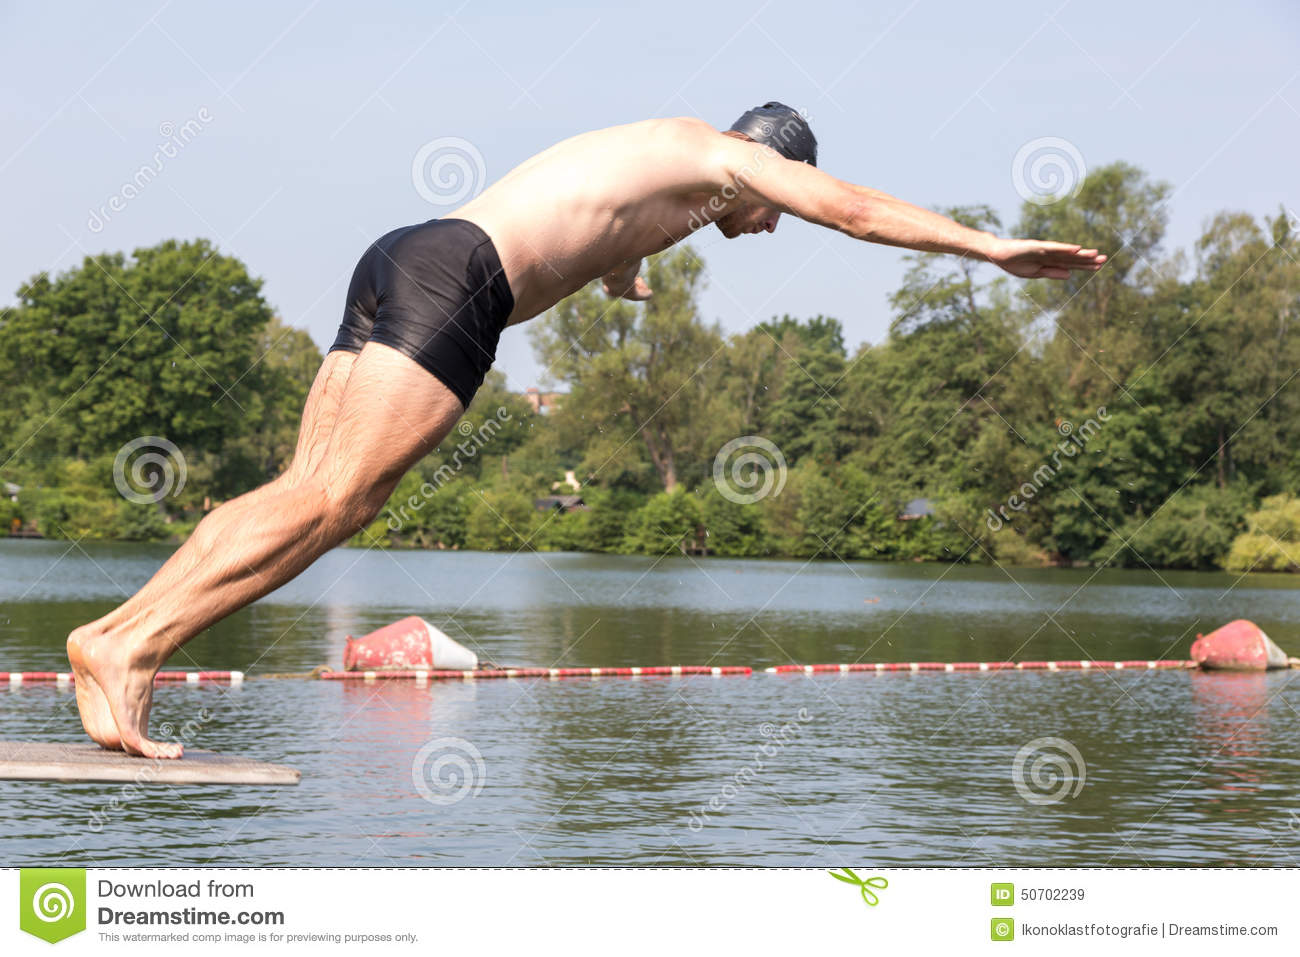 Man Jumping Off Diving Board At Swimming Pool Stock Image